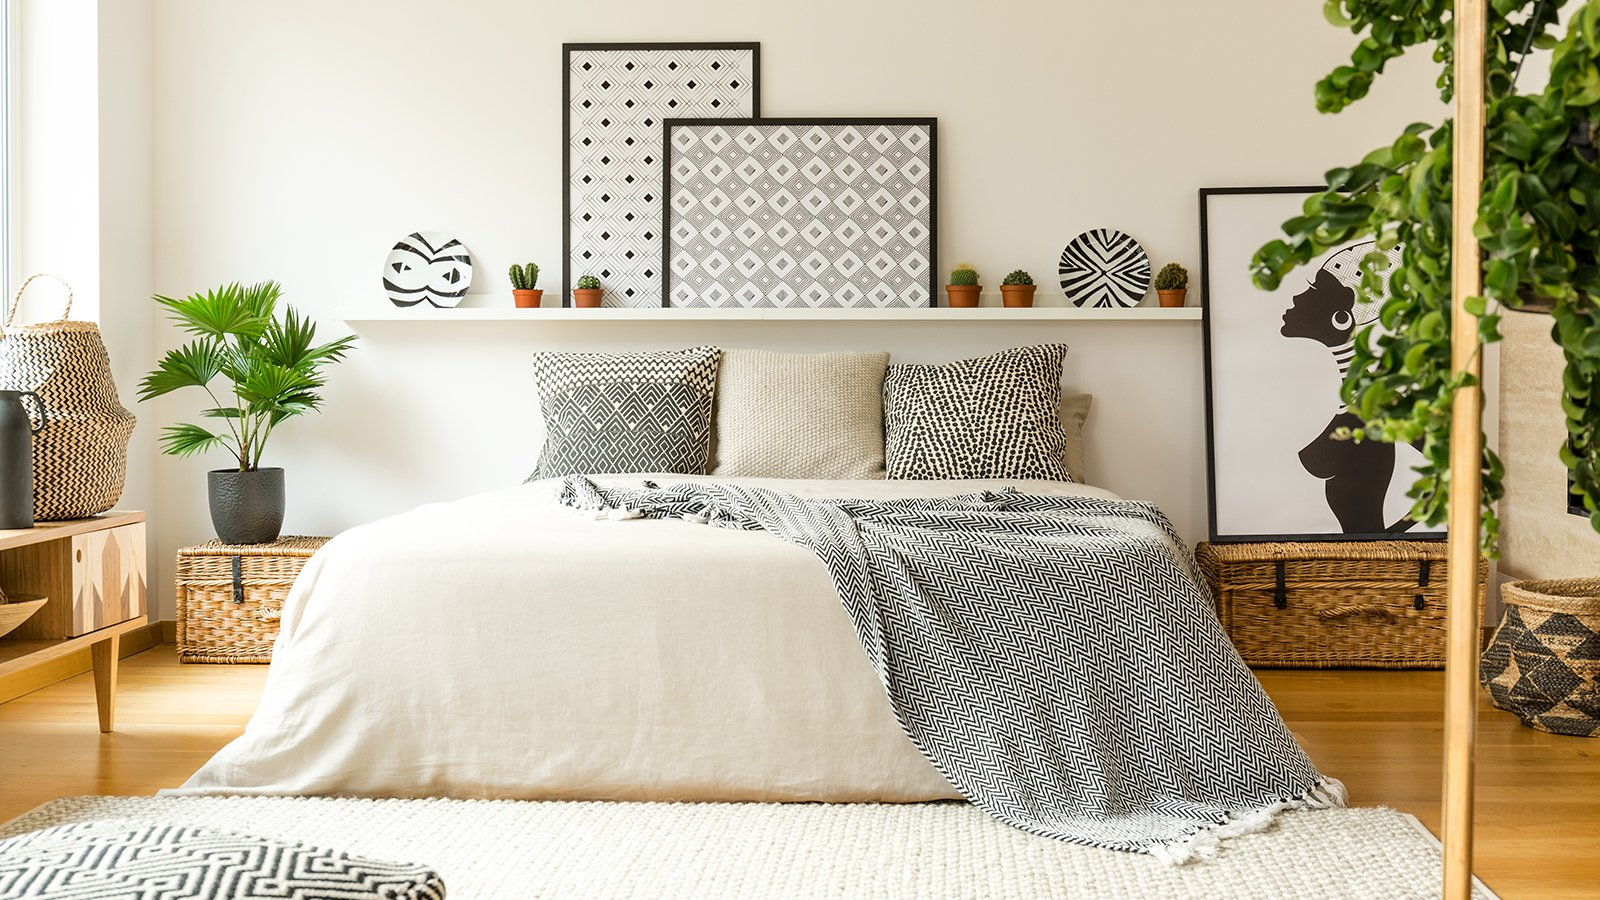 Warm bedroom interior with a comfy bed, patterned blanket and pillows, plants and modern graphics